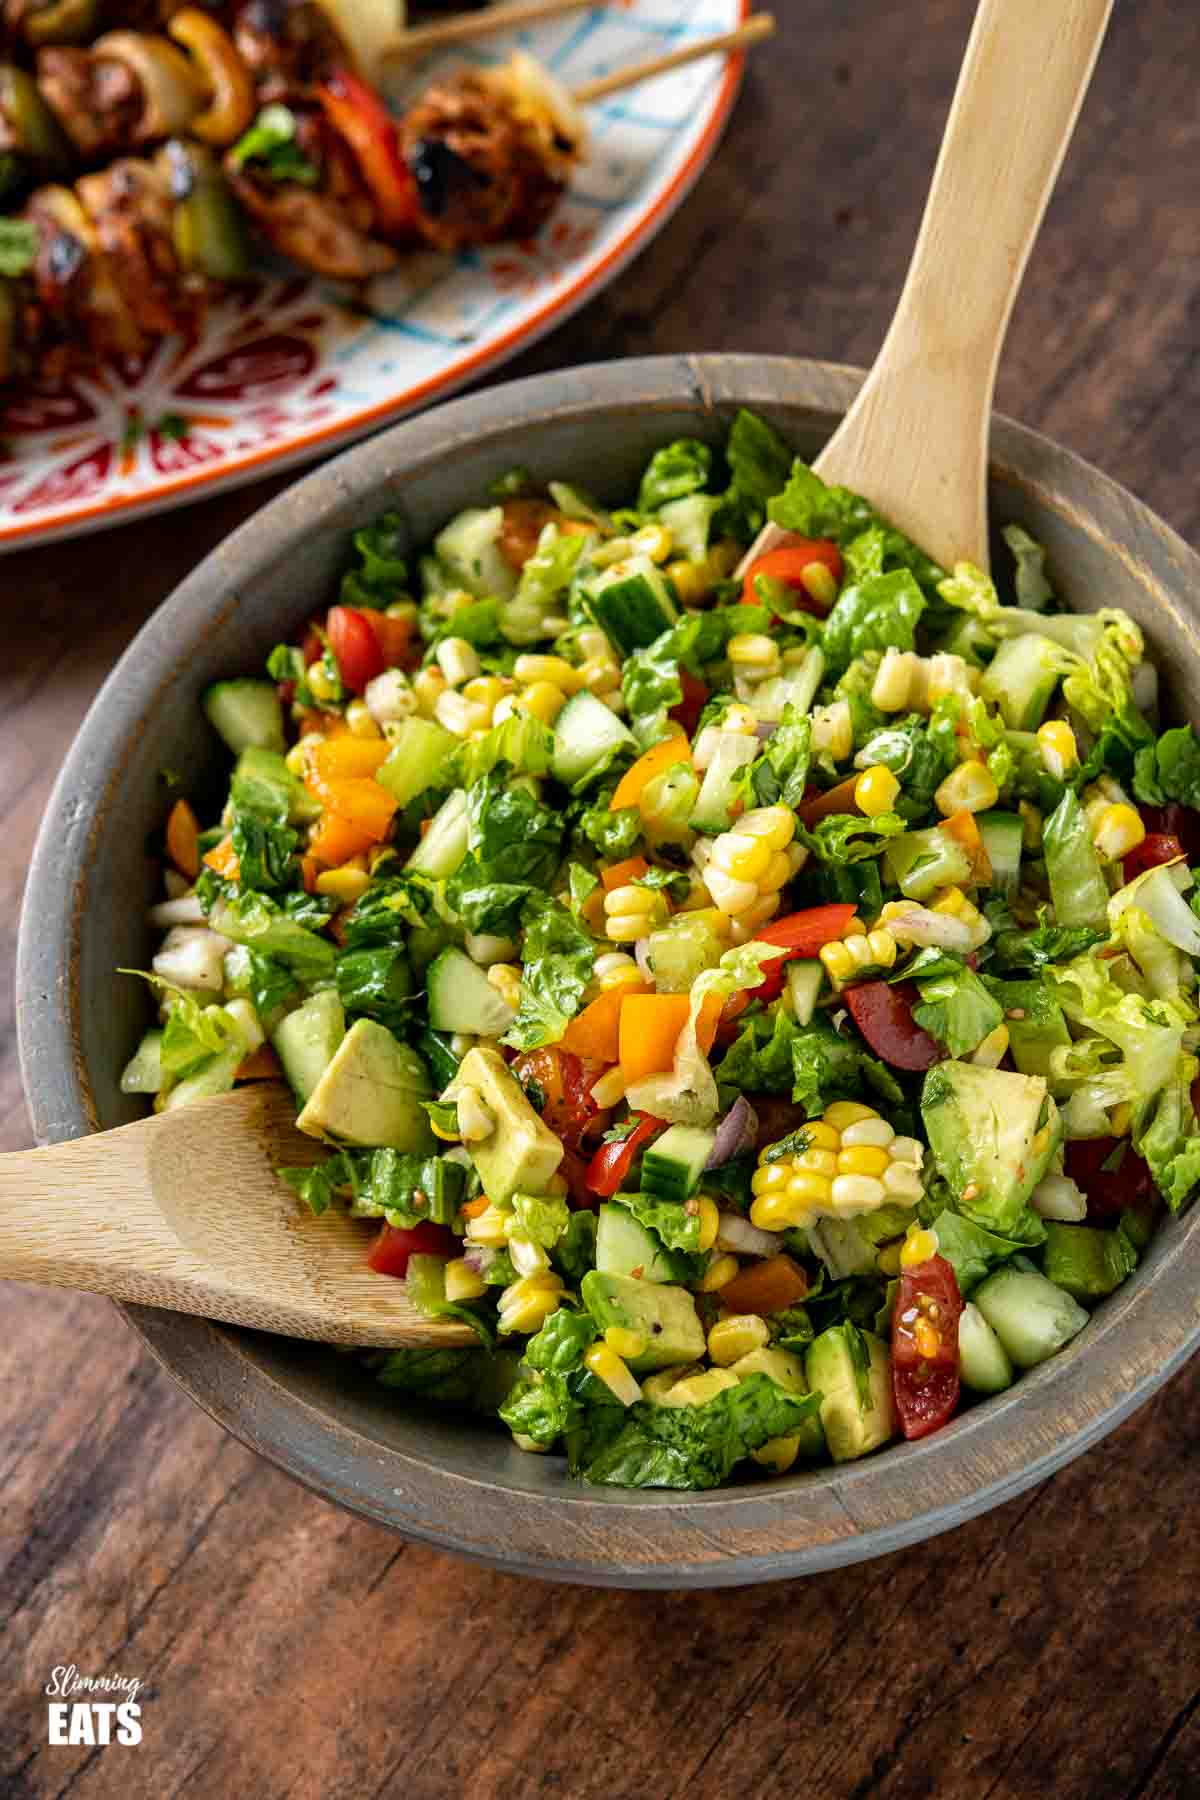 chopped salad in wooden bowl with wooden spoons with plate of chicken skewers behind